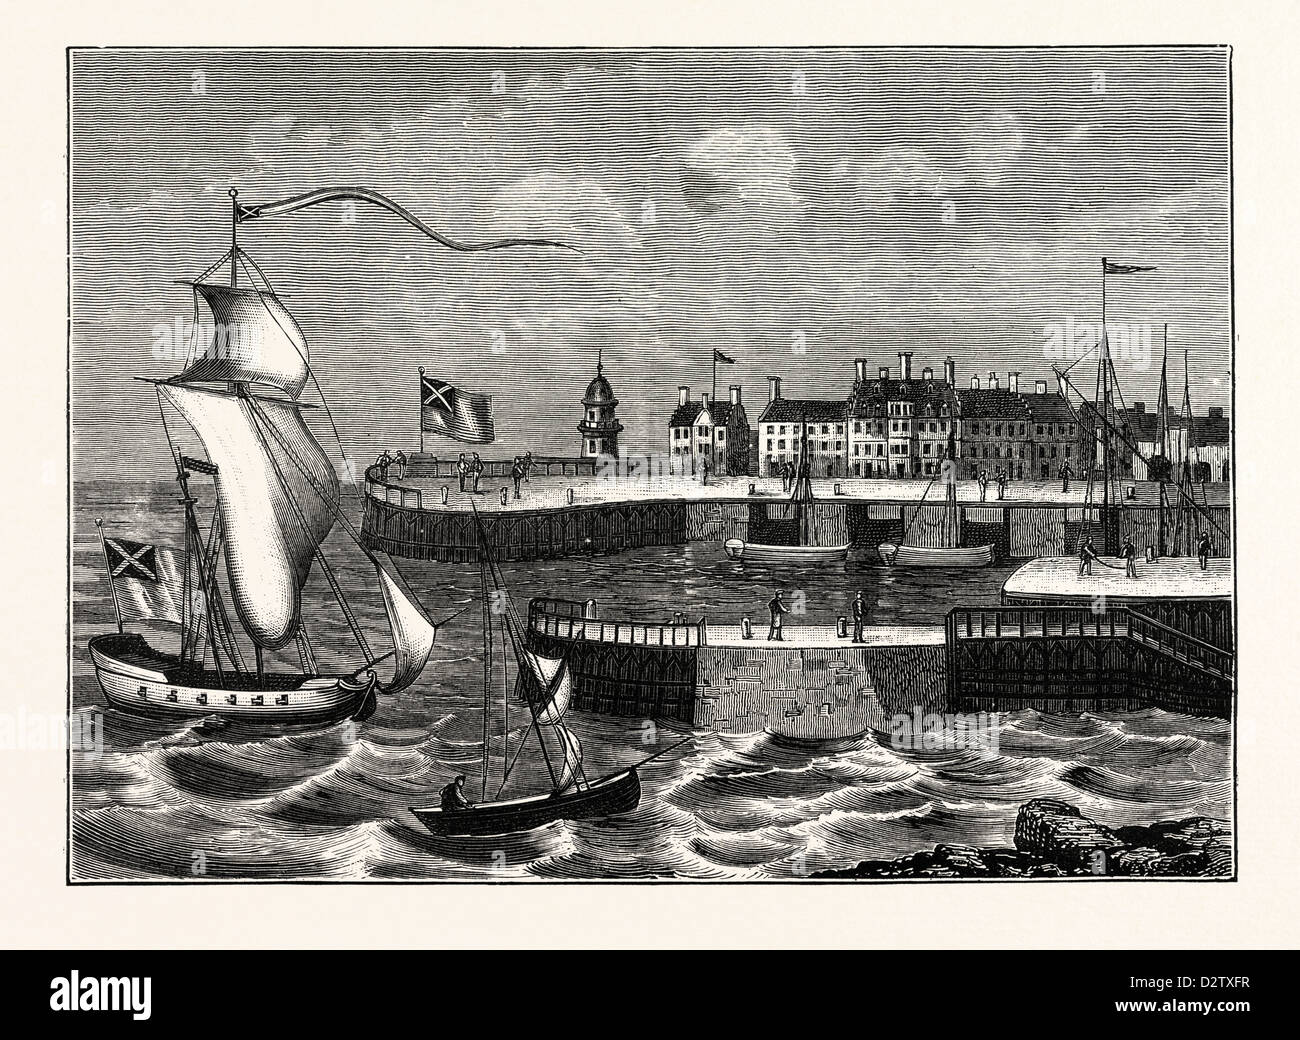 EDINBURGH: LEITH HARBOUR ABOUT 1700 - Stock Image